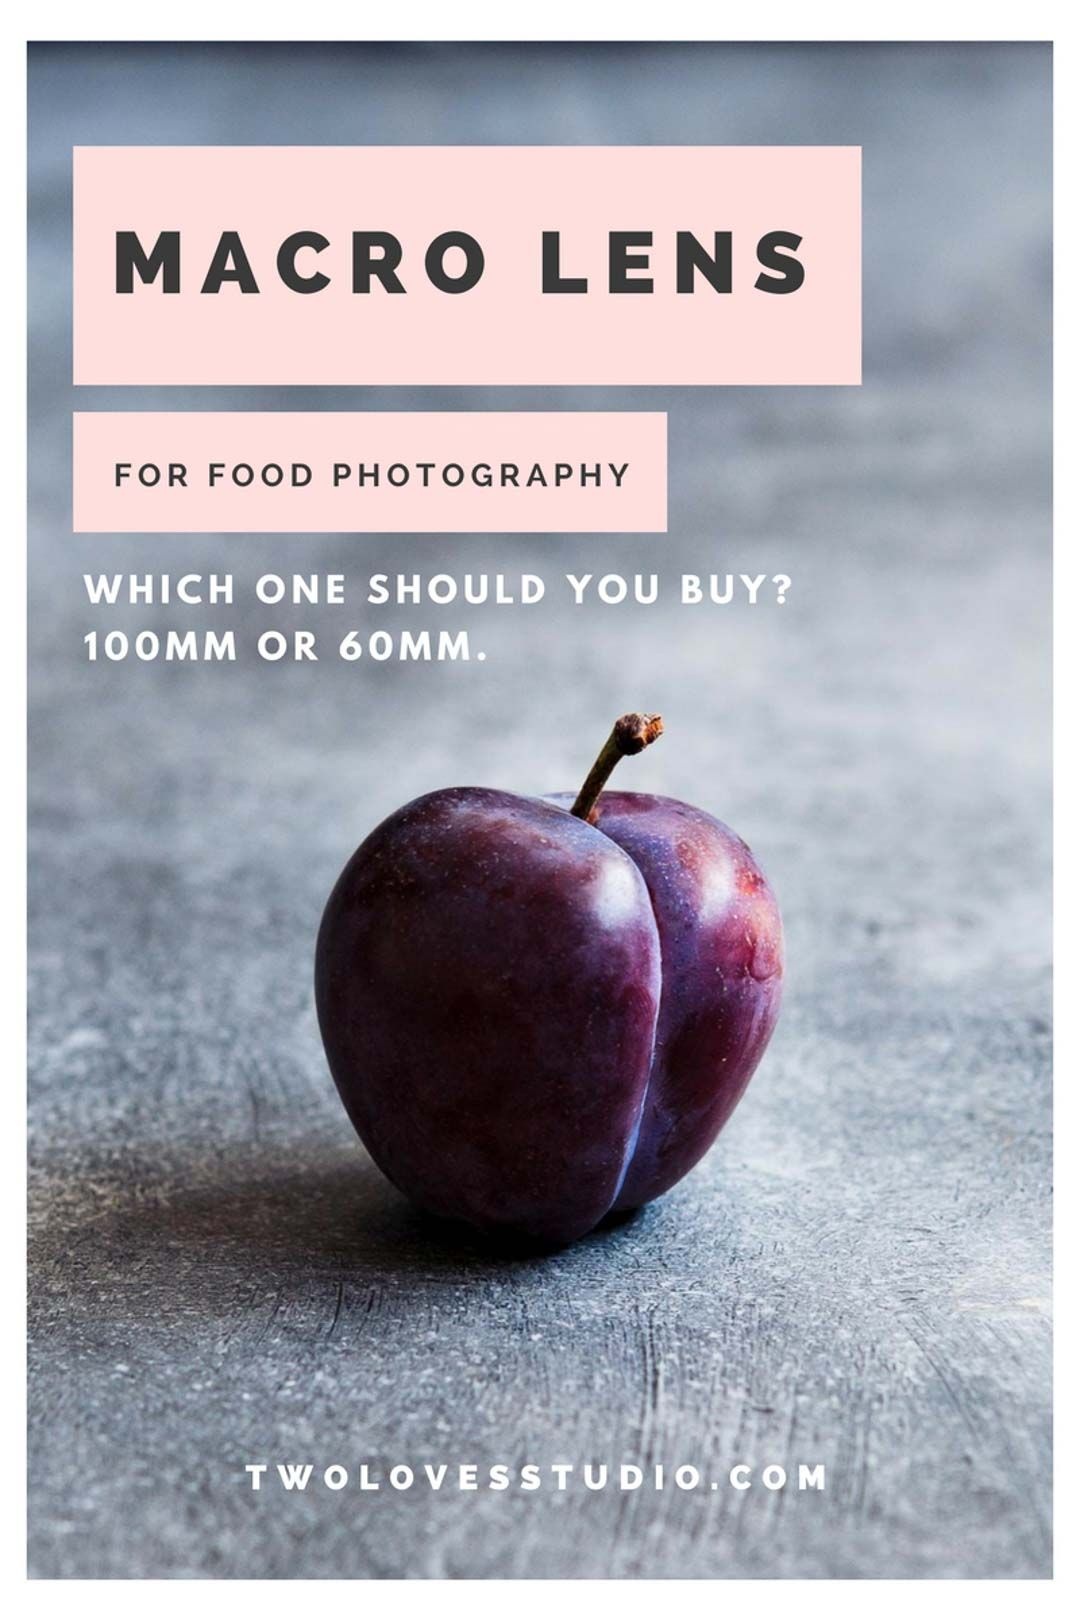 A Collection Of 99 Food Photography Tips From Photographers At All Stages Their Creative Journey About Lighting Hacks Props Styling And Mindset